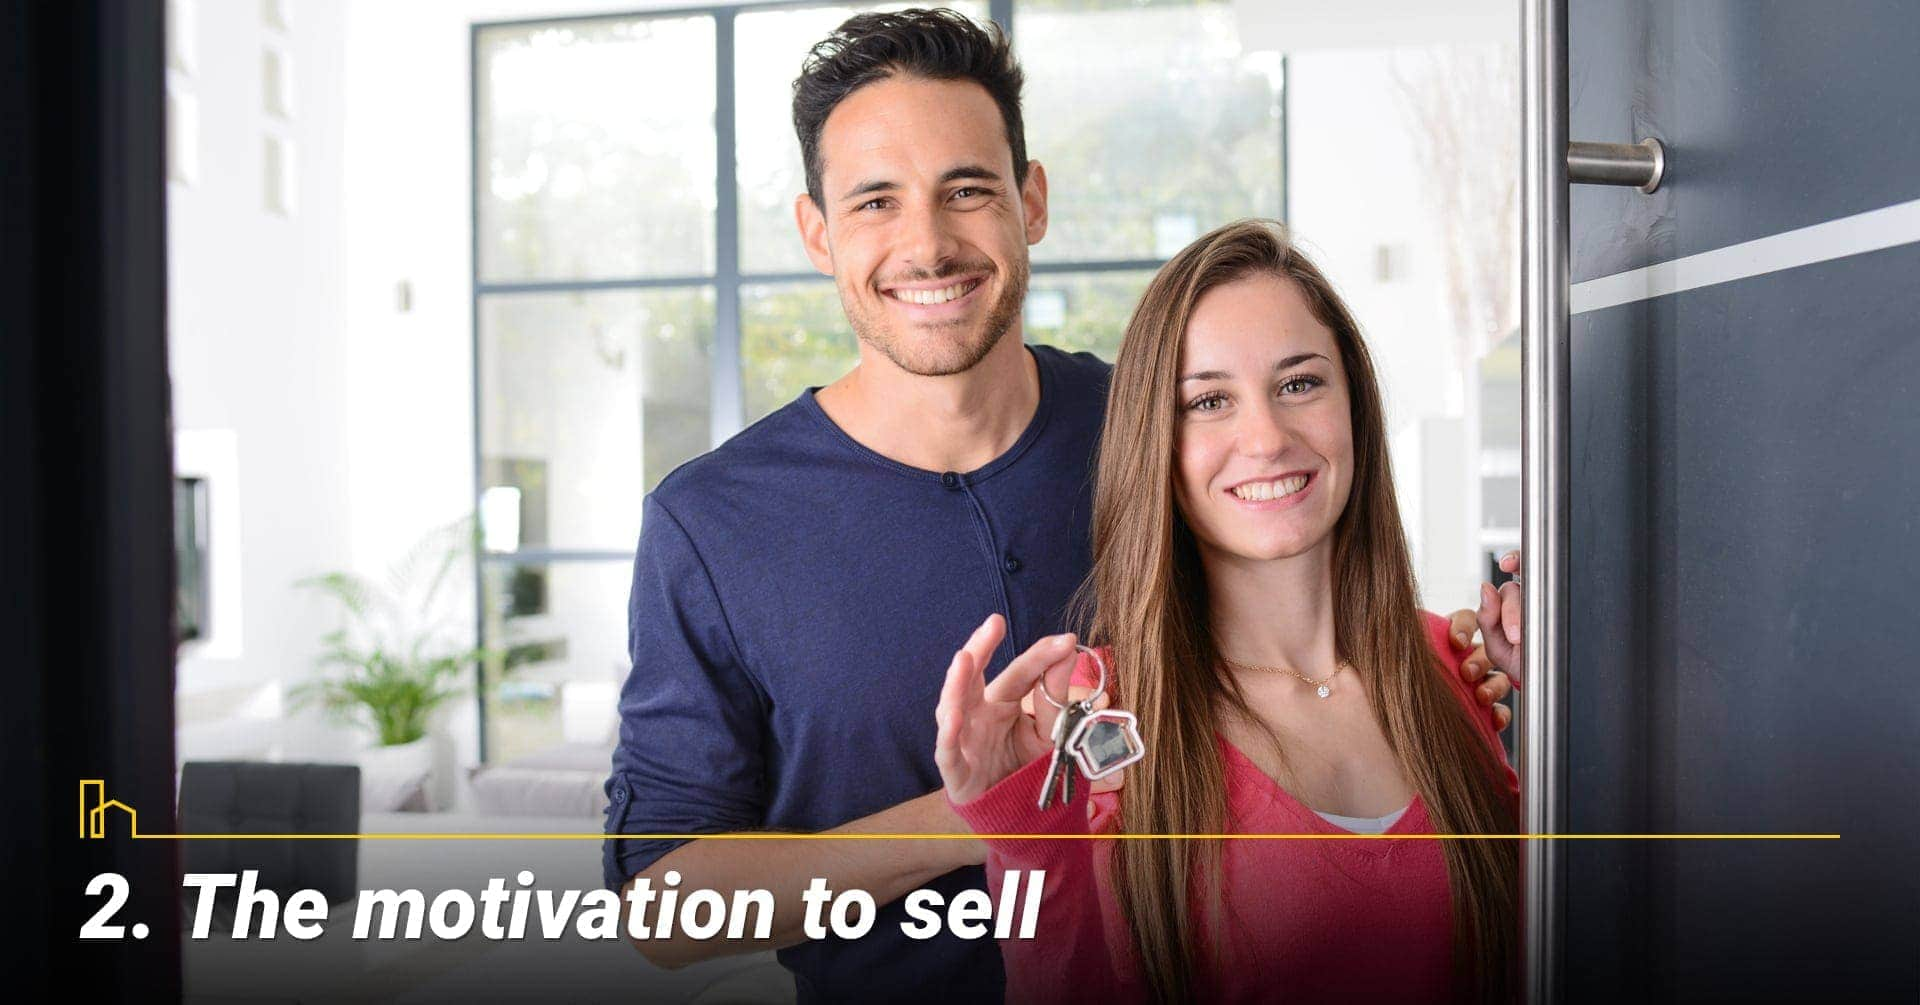 The motivation to sell, reasons to sell your house